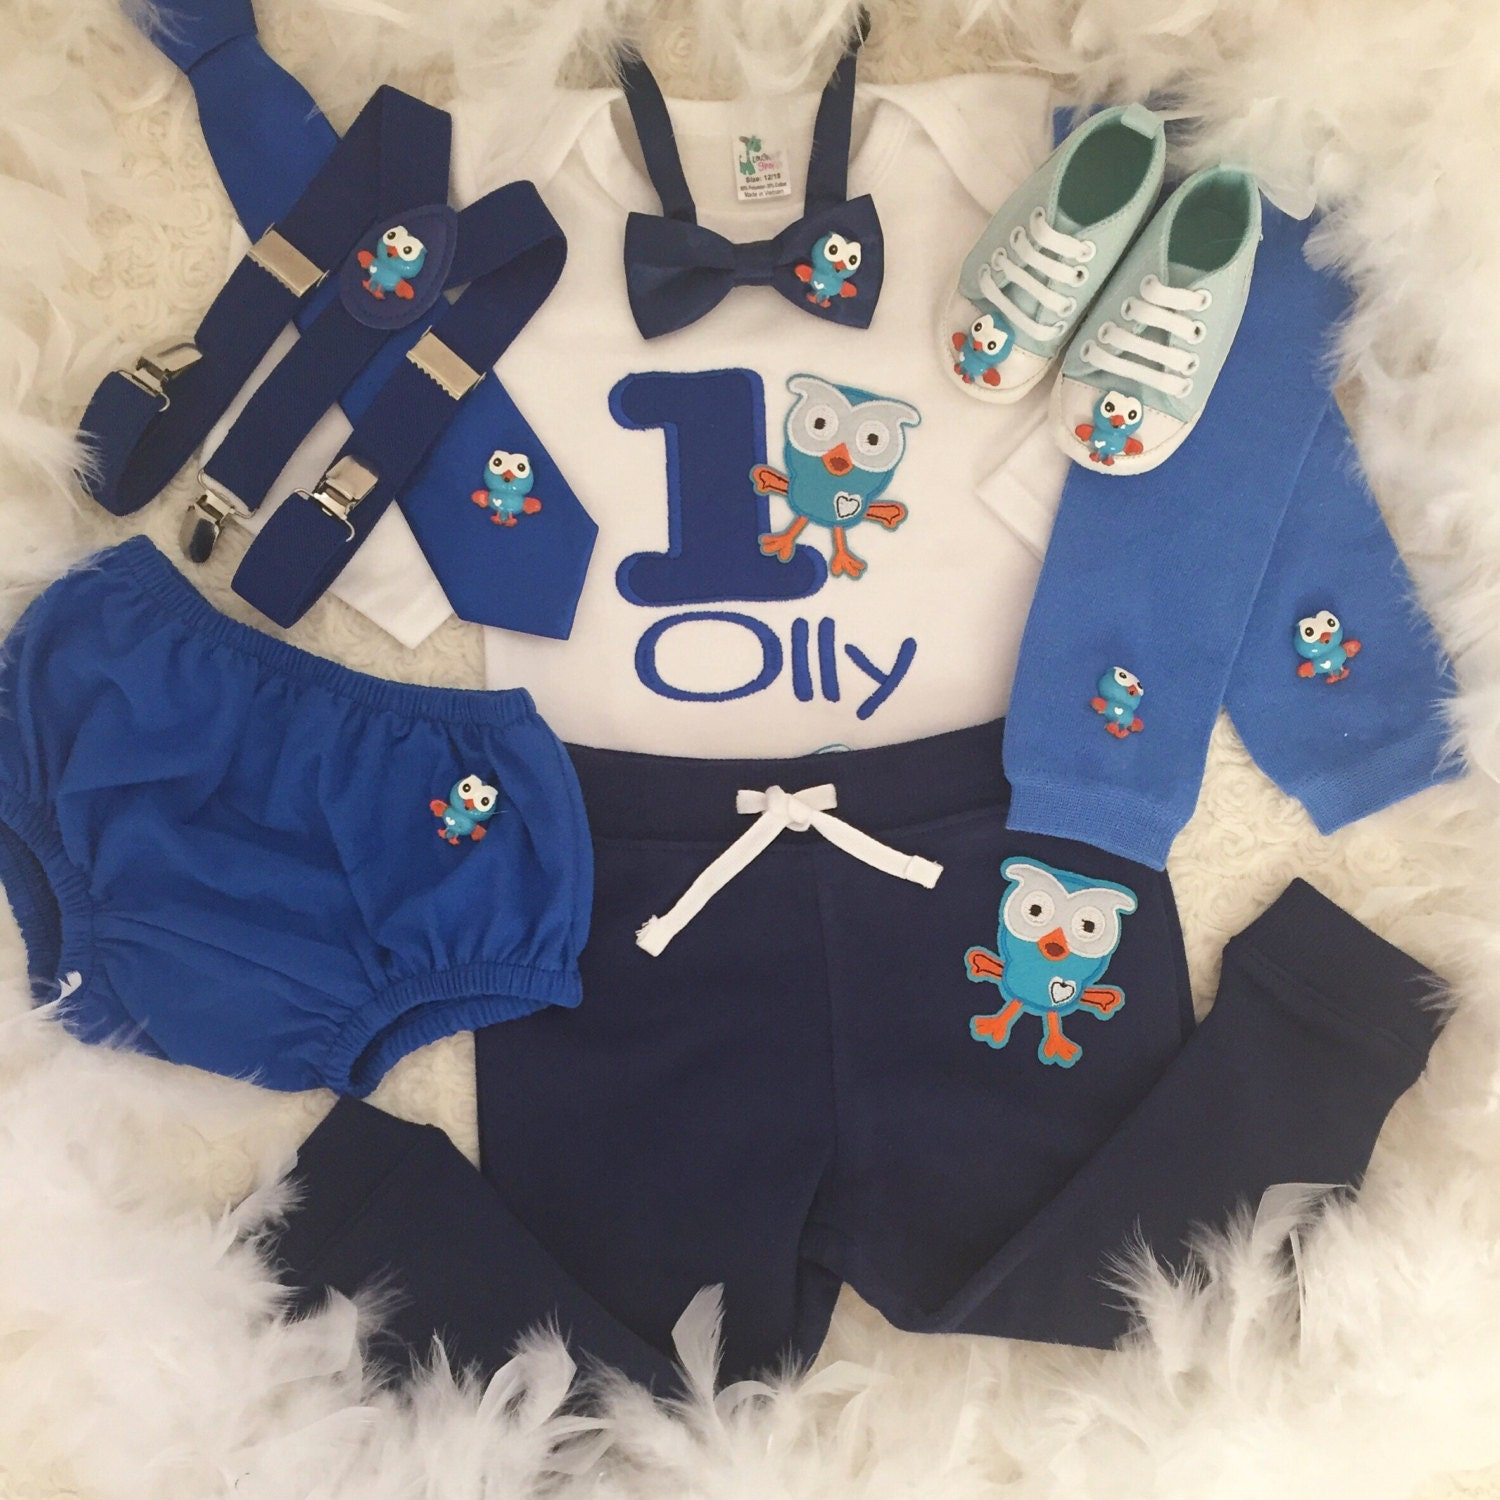 7pc set Giggle and Hoot inspired boys Birthday tie,suspenders,shoes,bib outfit- includes personalised Top,bottom,bow tie,suspenders,shoes,bib Birthday and partyhat 6578ad